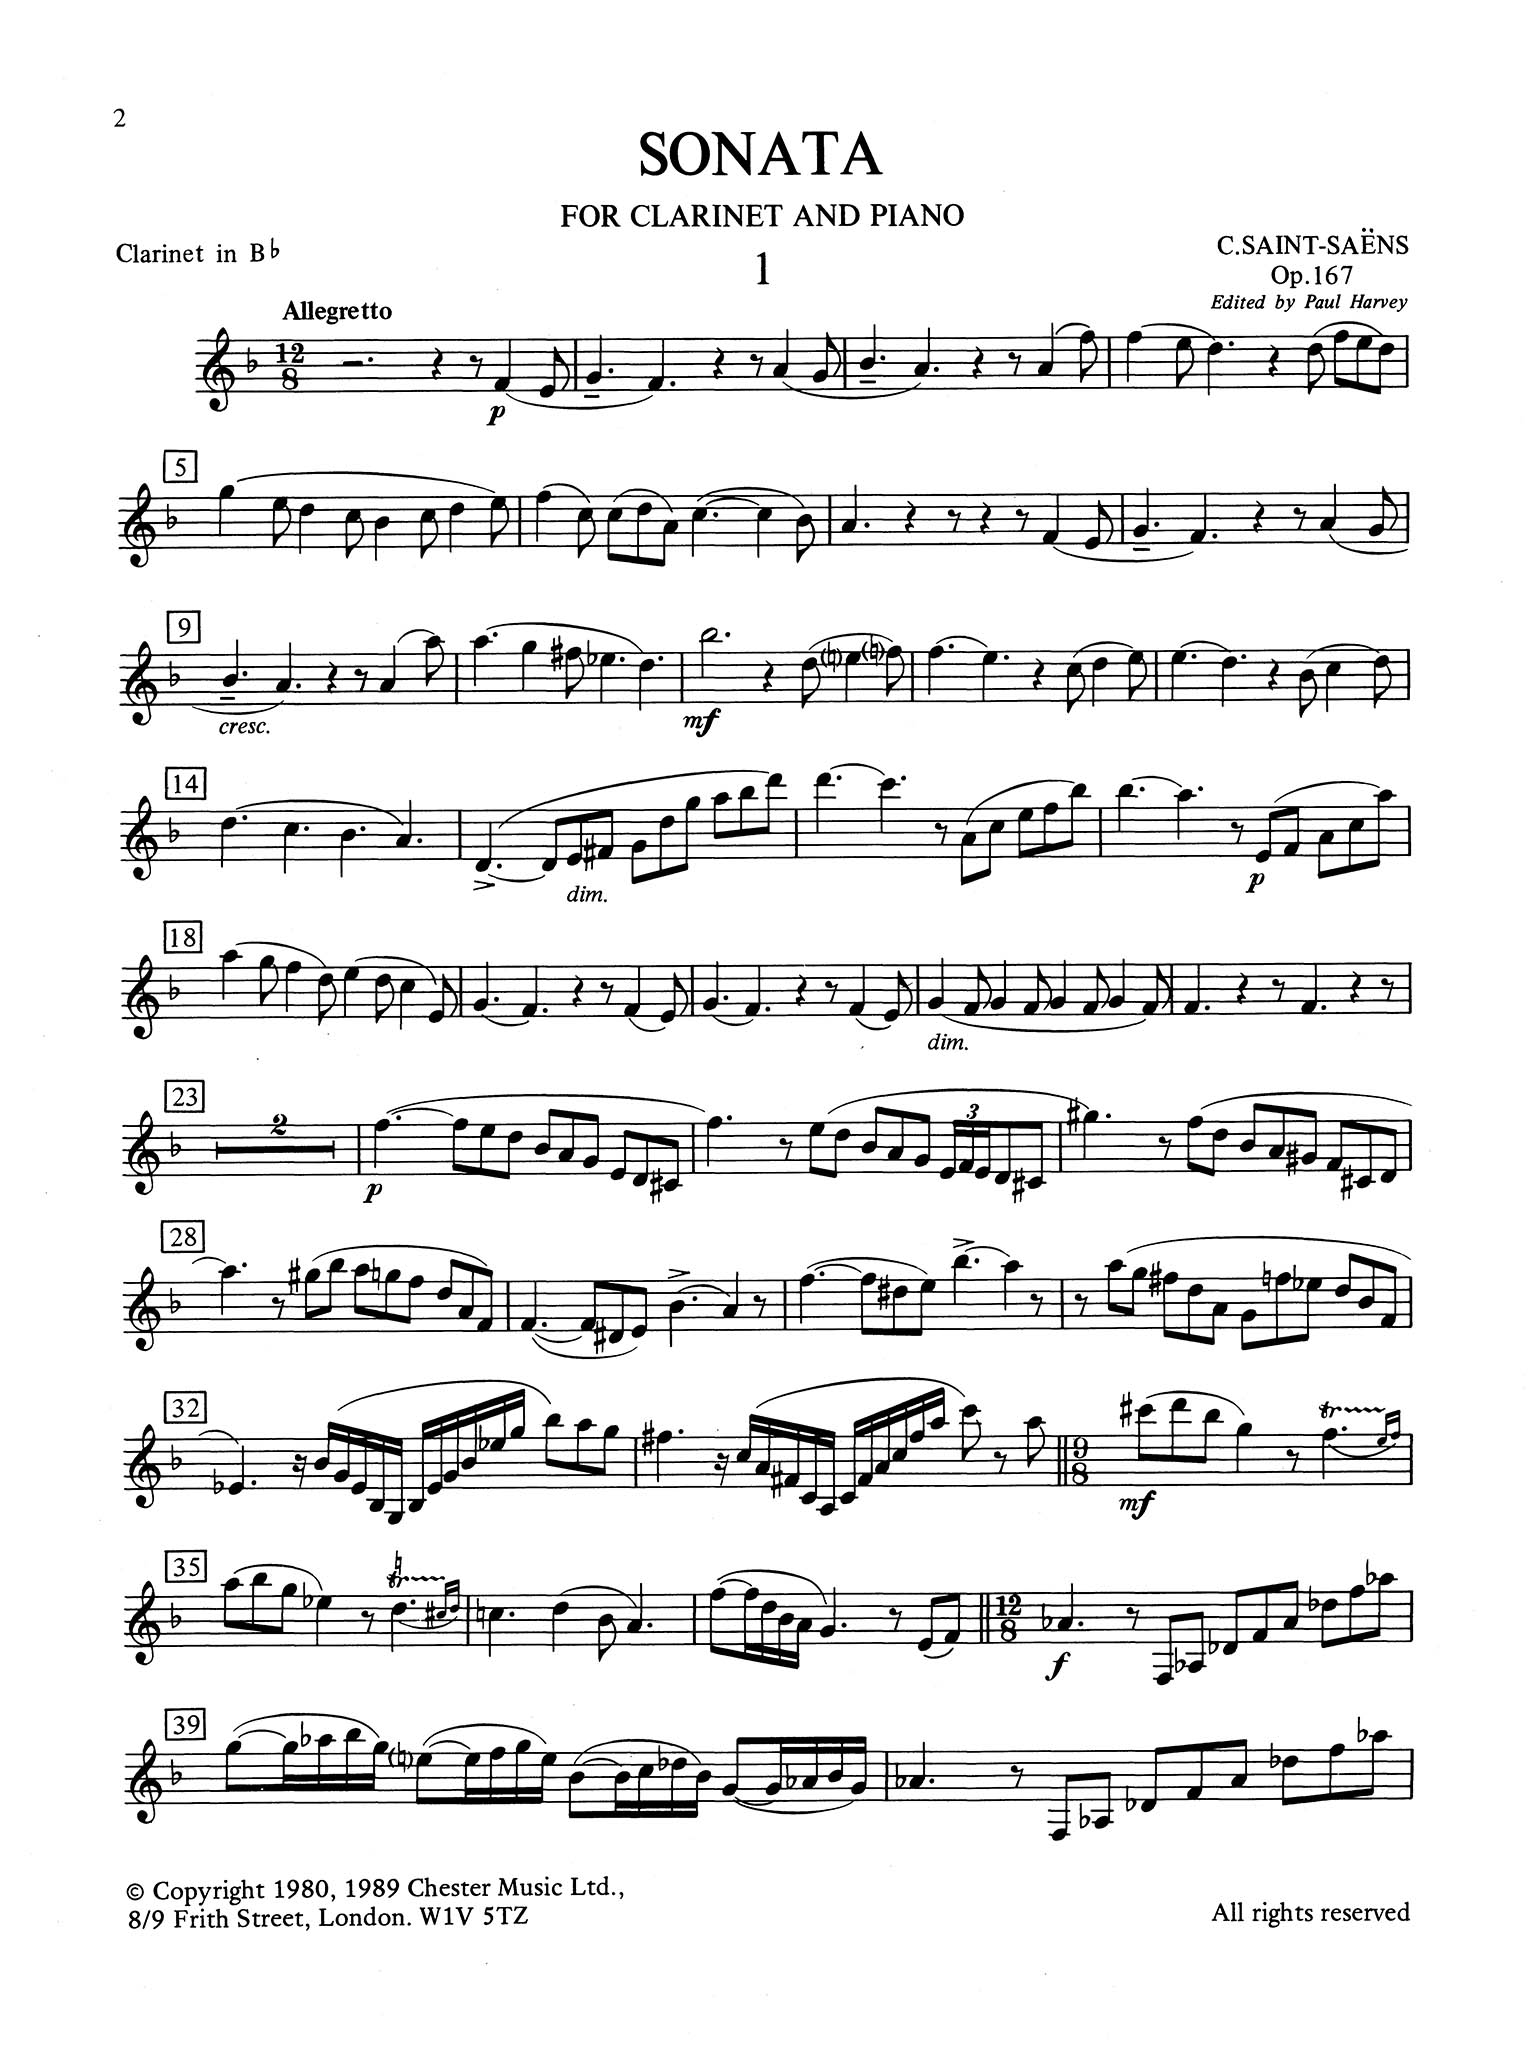 Sonata for Clarinet & Piano, Op. 167 Clarinet part